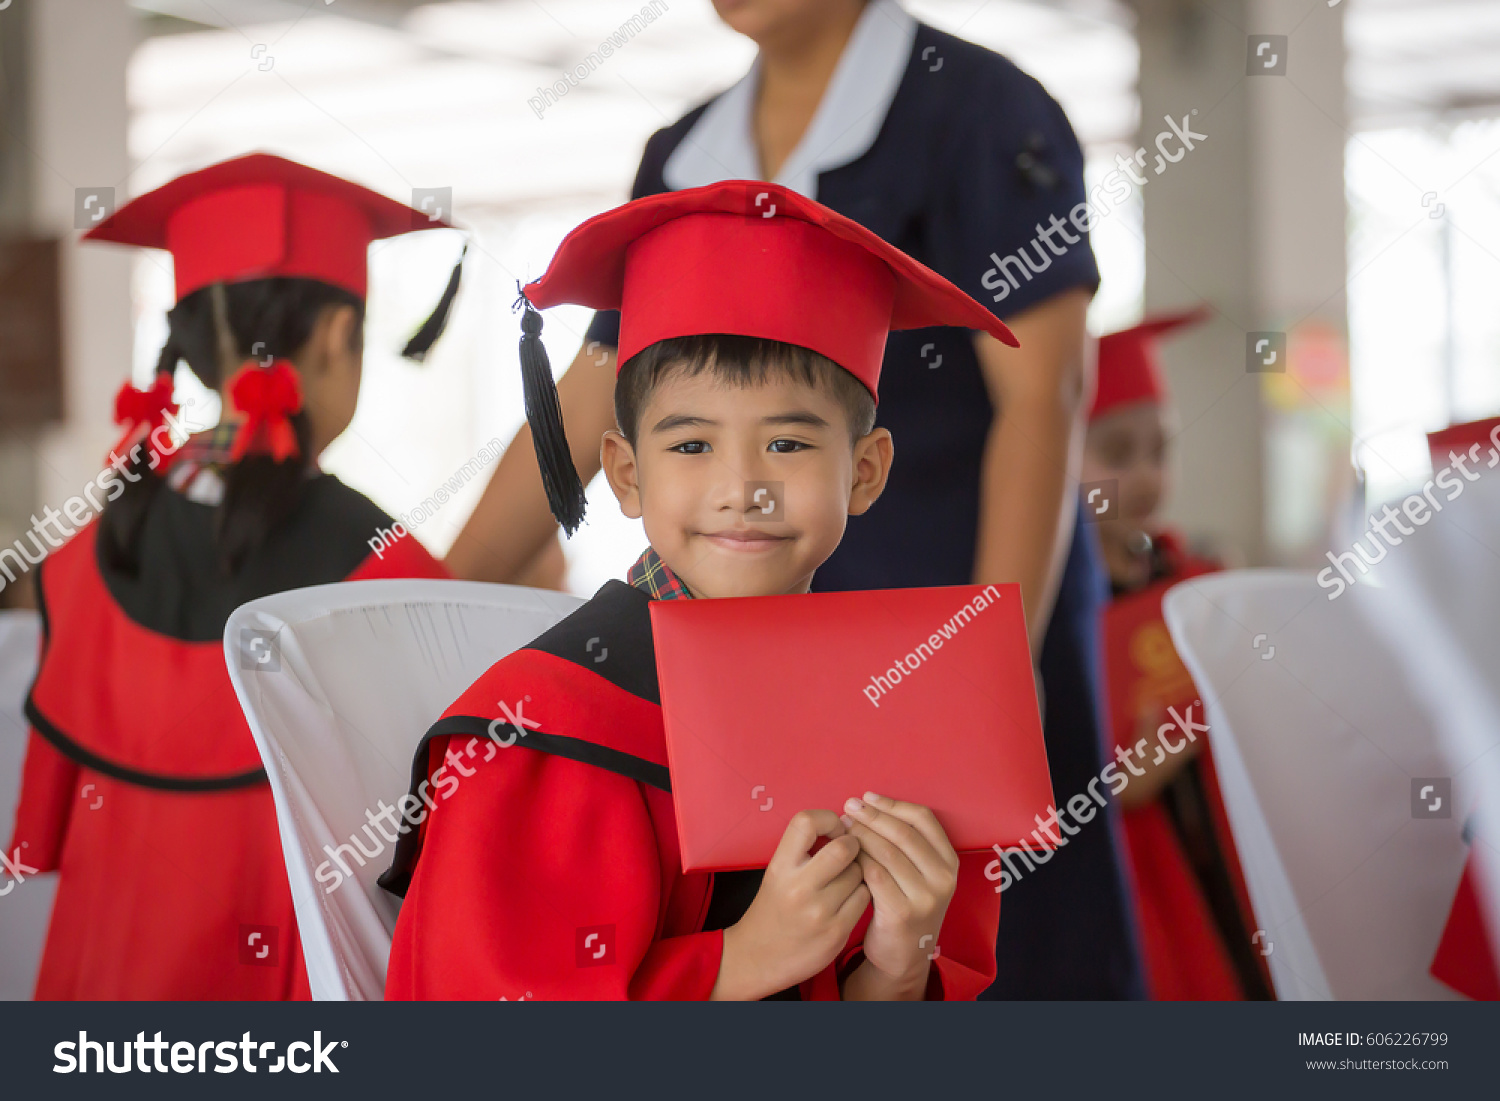 Asian Boy Red Graduation Gown Stock Photo (Edit Now) 606226799 ...